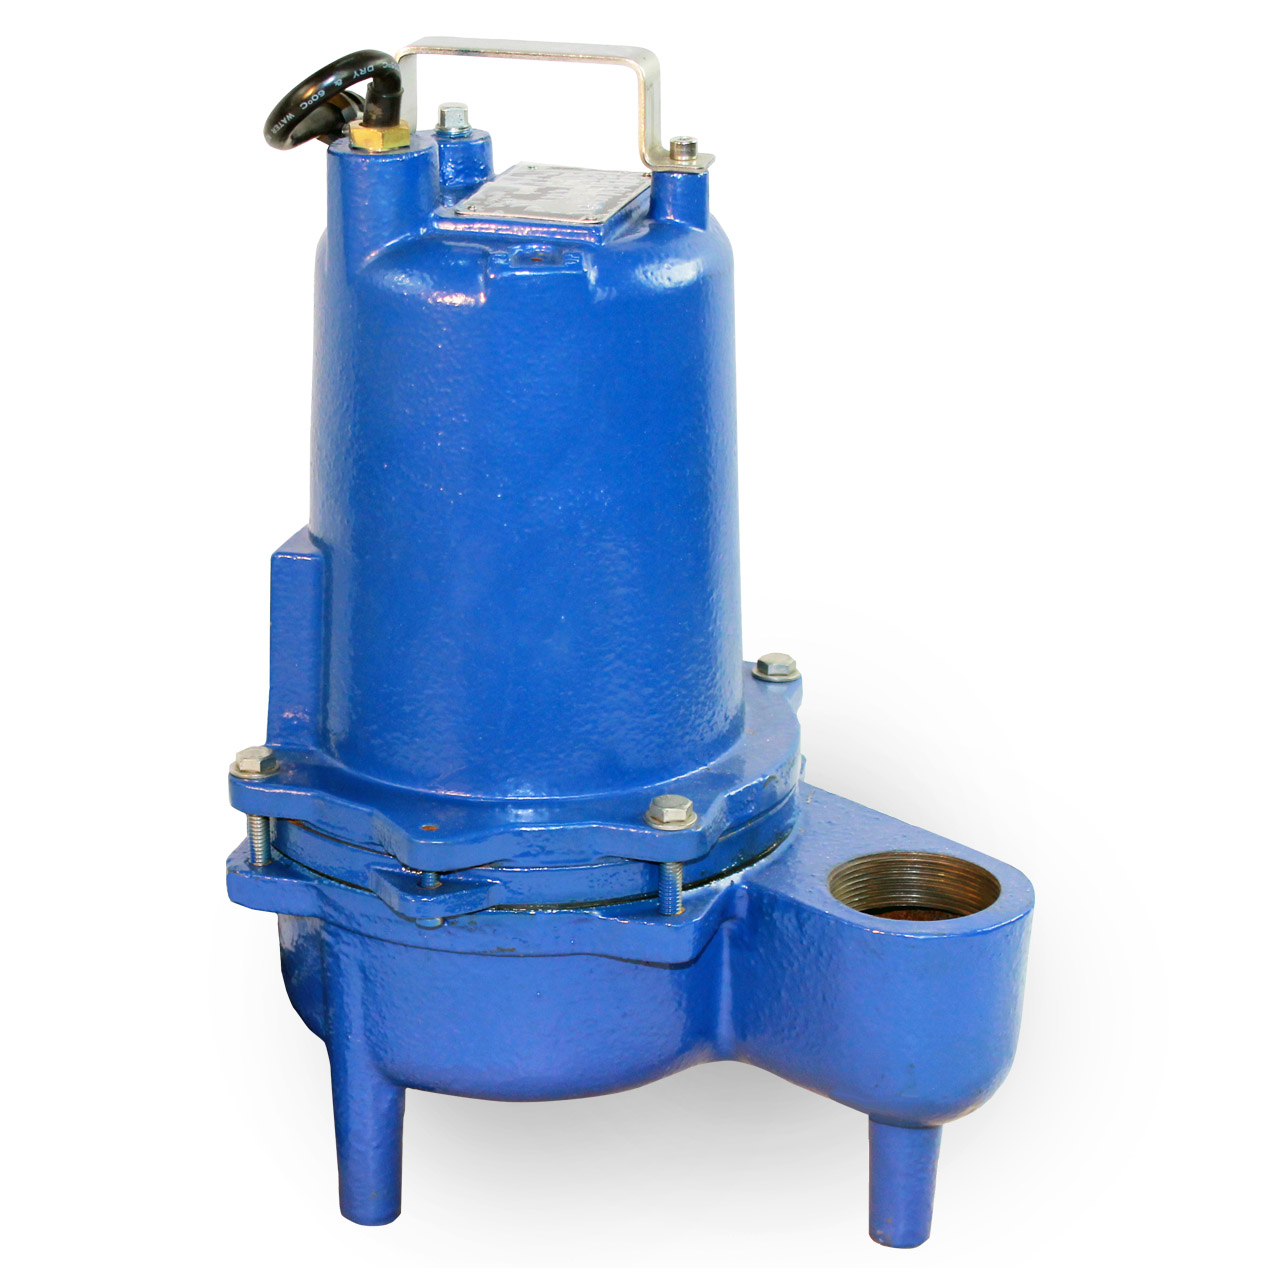 and system barnes inc accessories assorted barns pump sizes way to the all sump include oil filters up